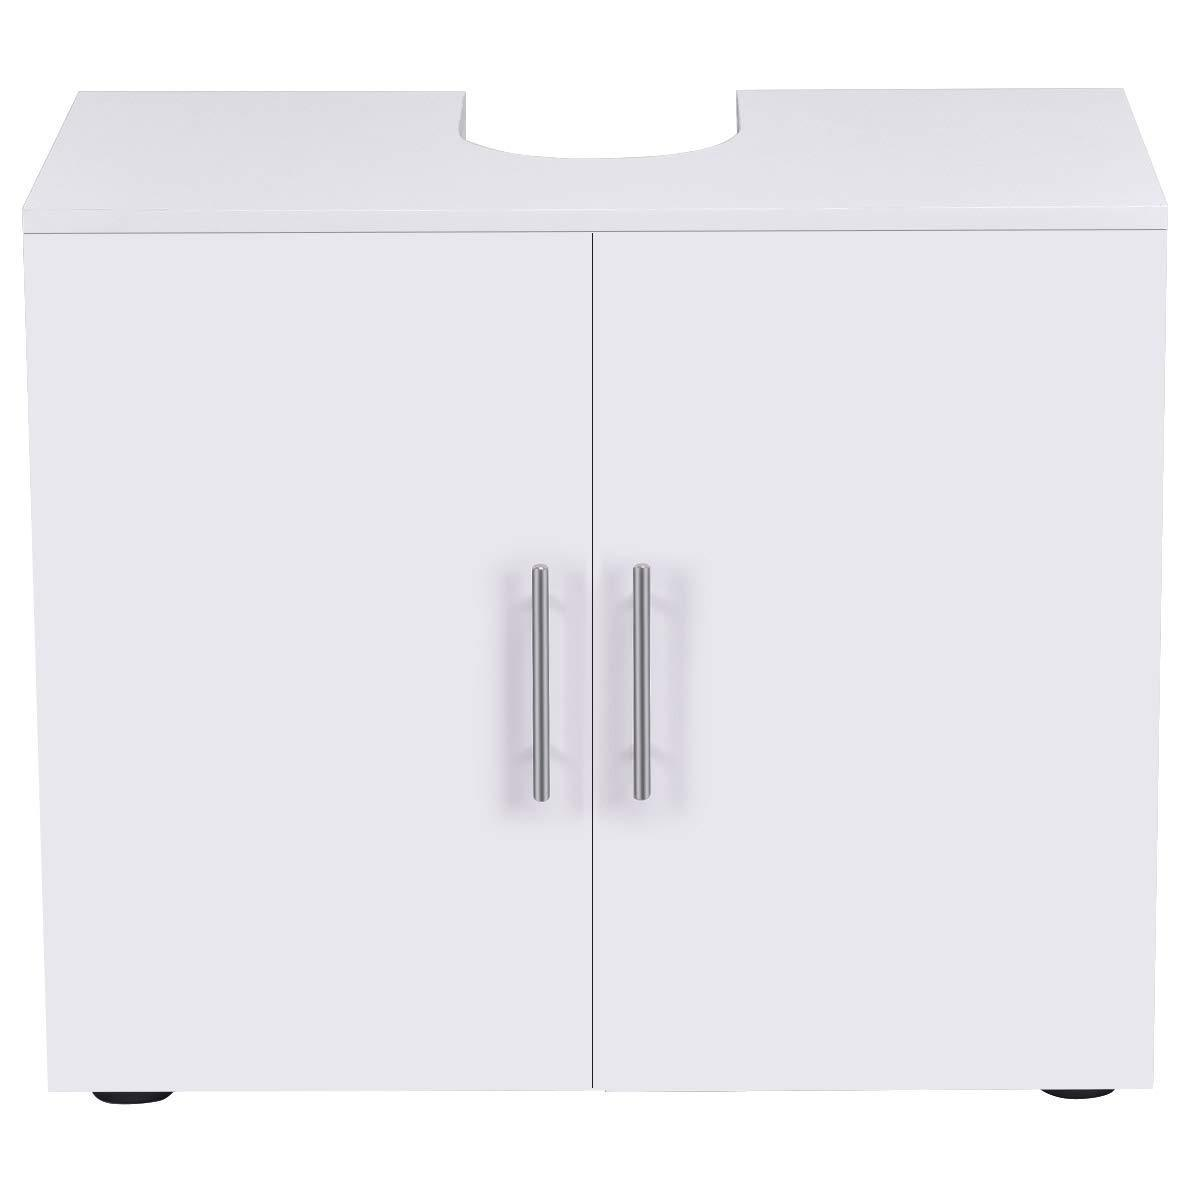 Get bathroom non pedestal under sink vanity cabinet multipurpose freestanding space saver storage organizer double doors with shelves white